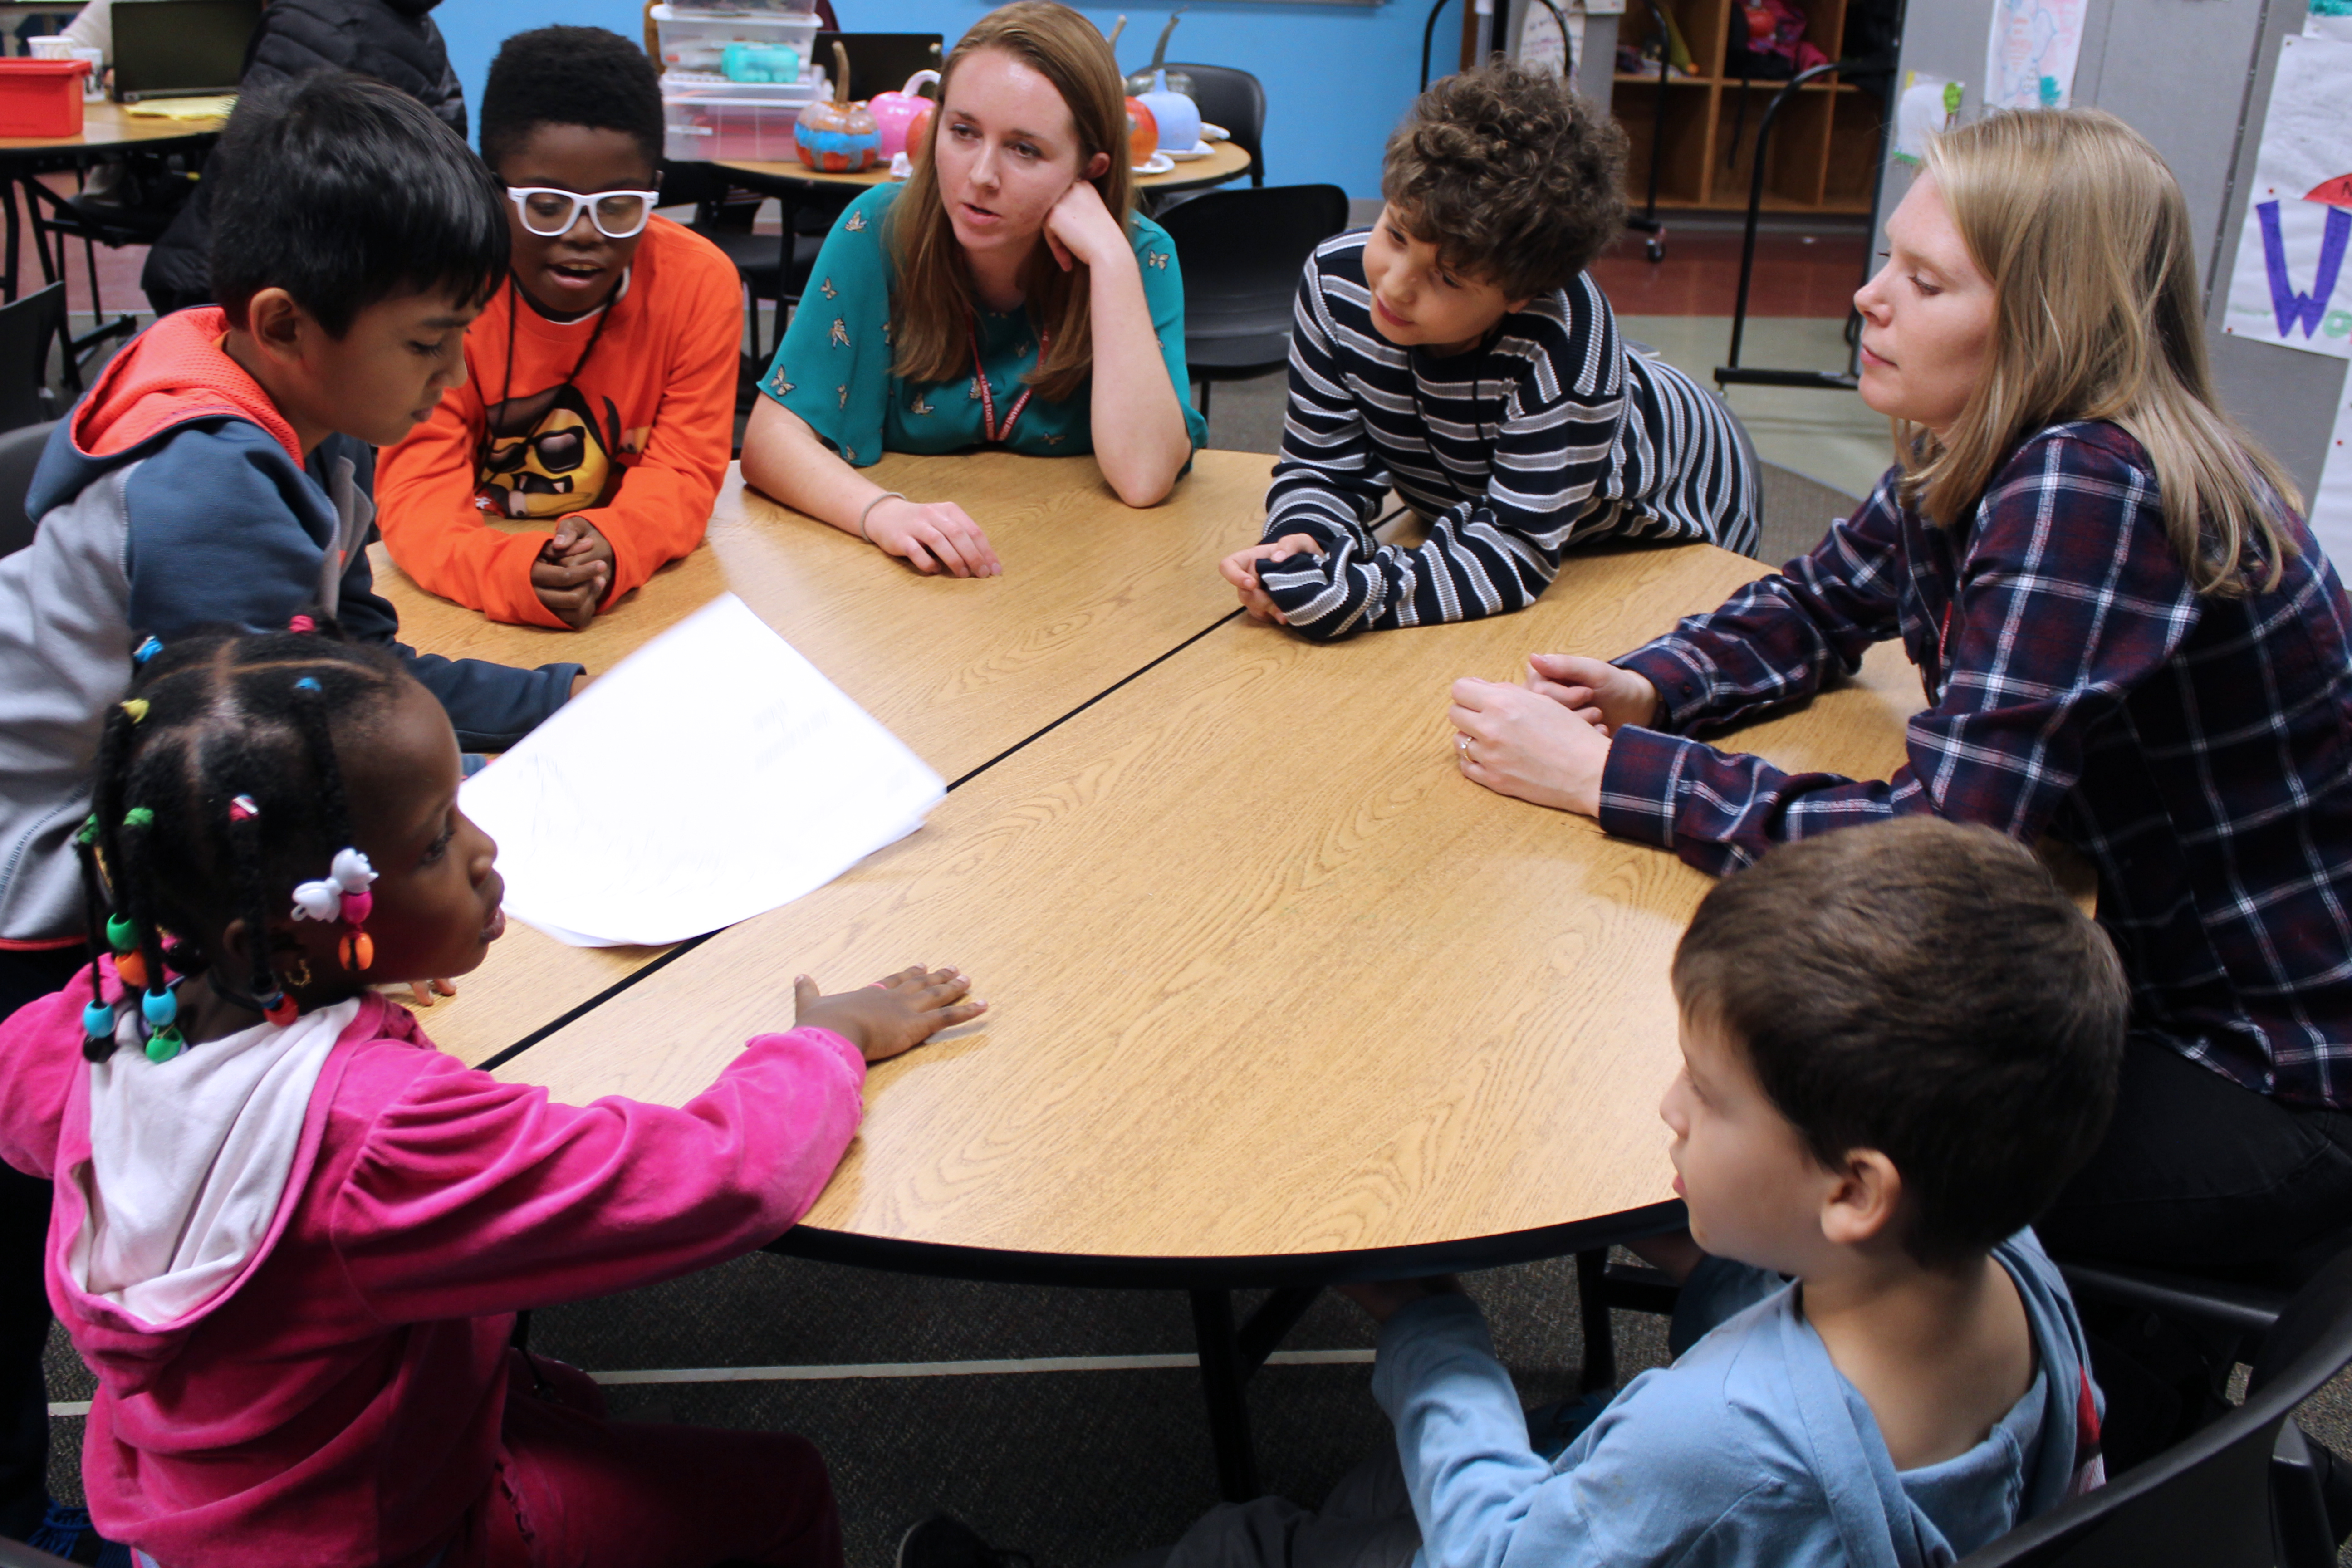 Two ISU students work with Unity youth